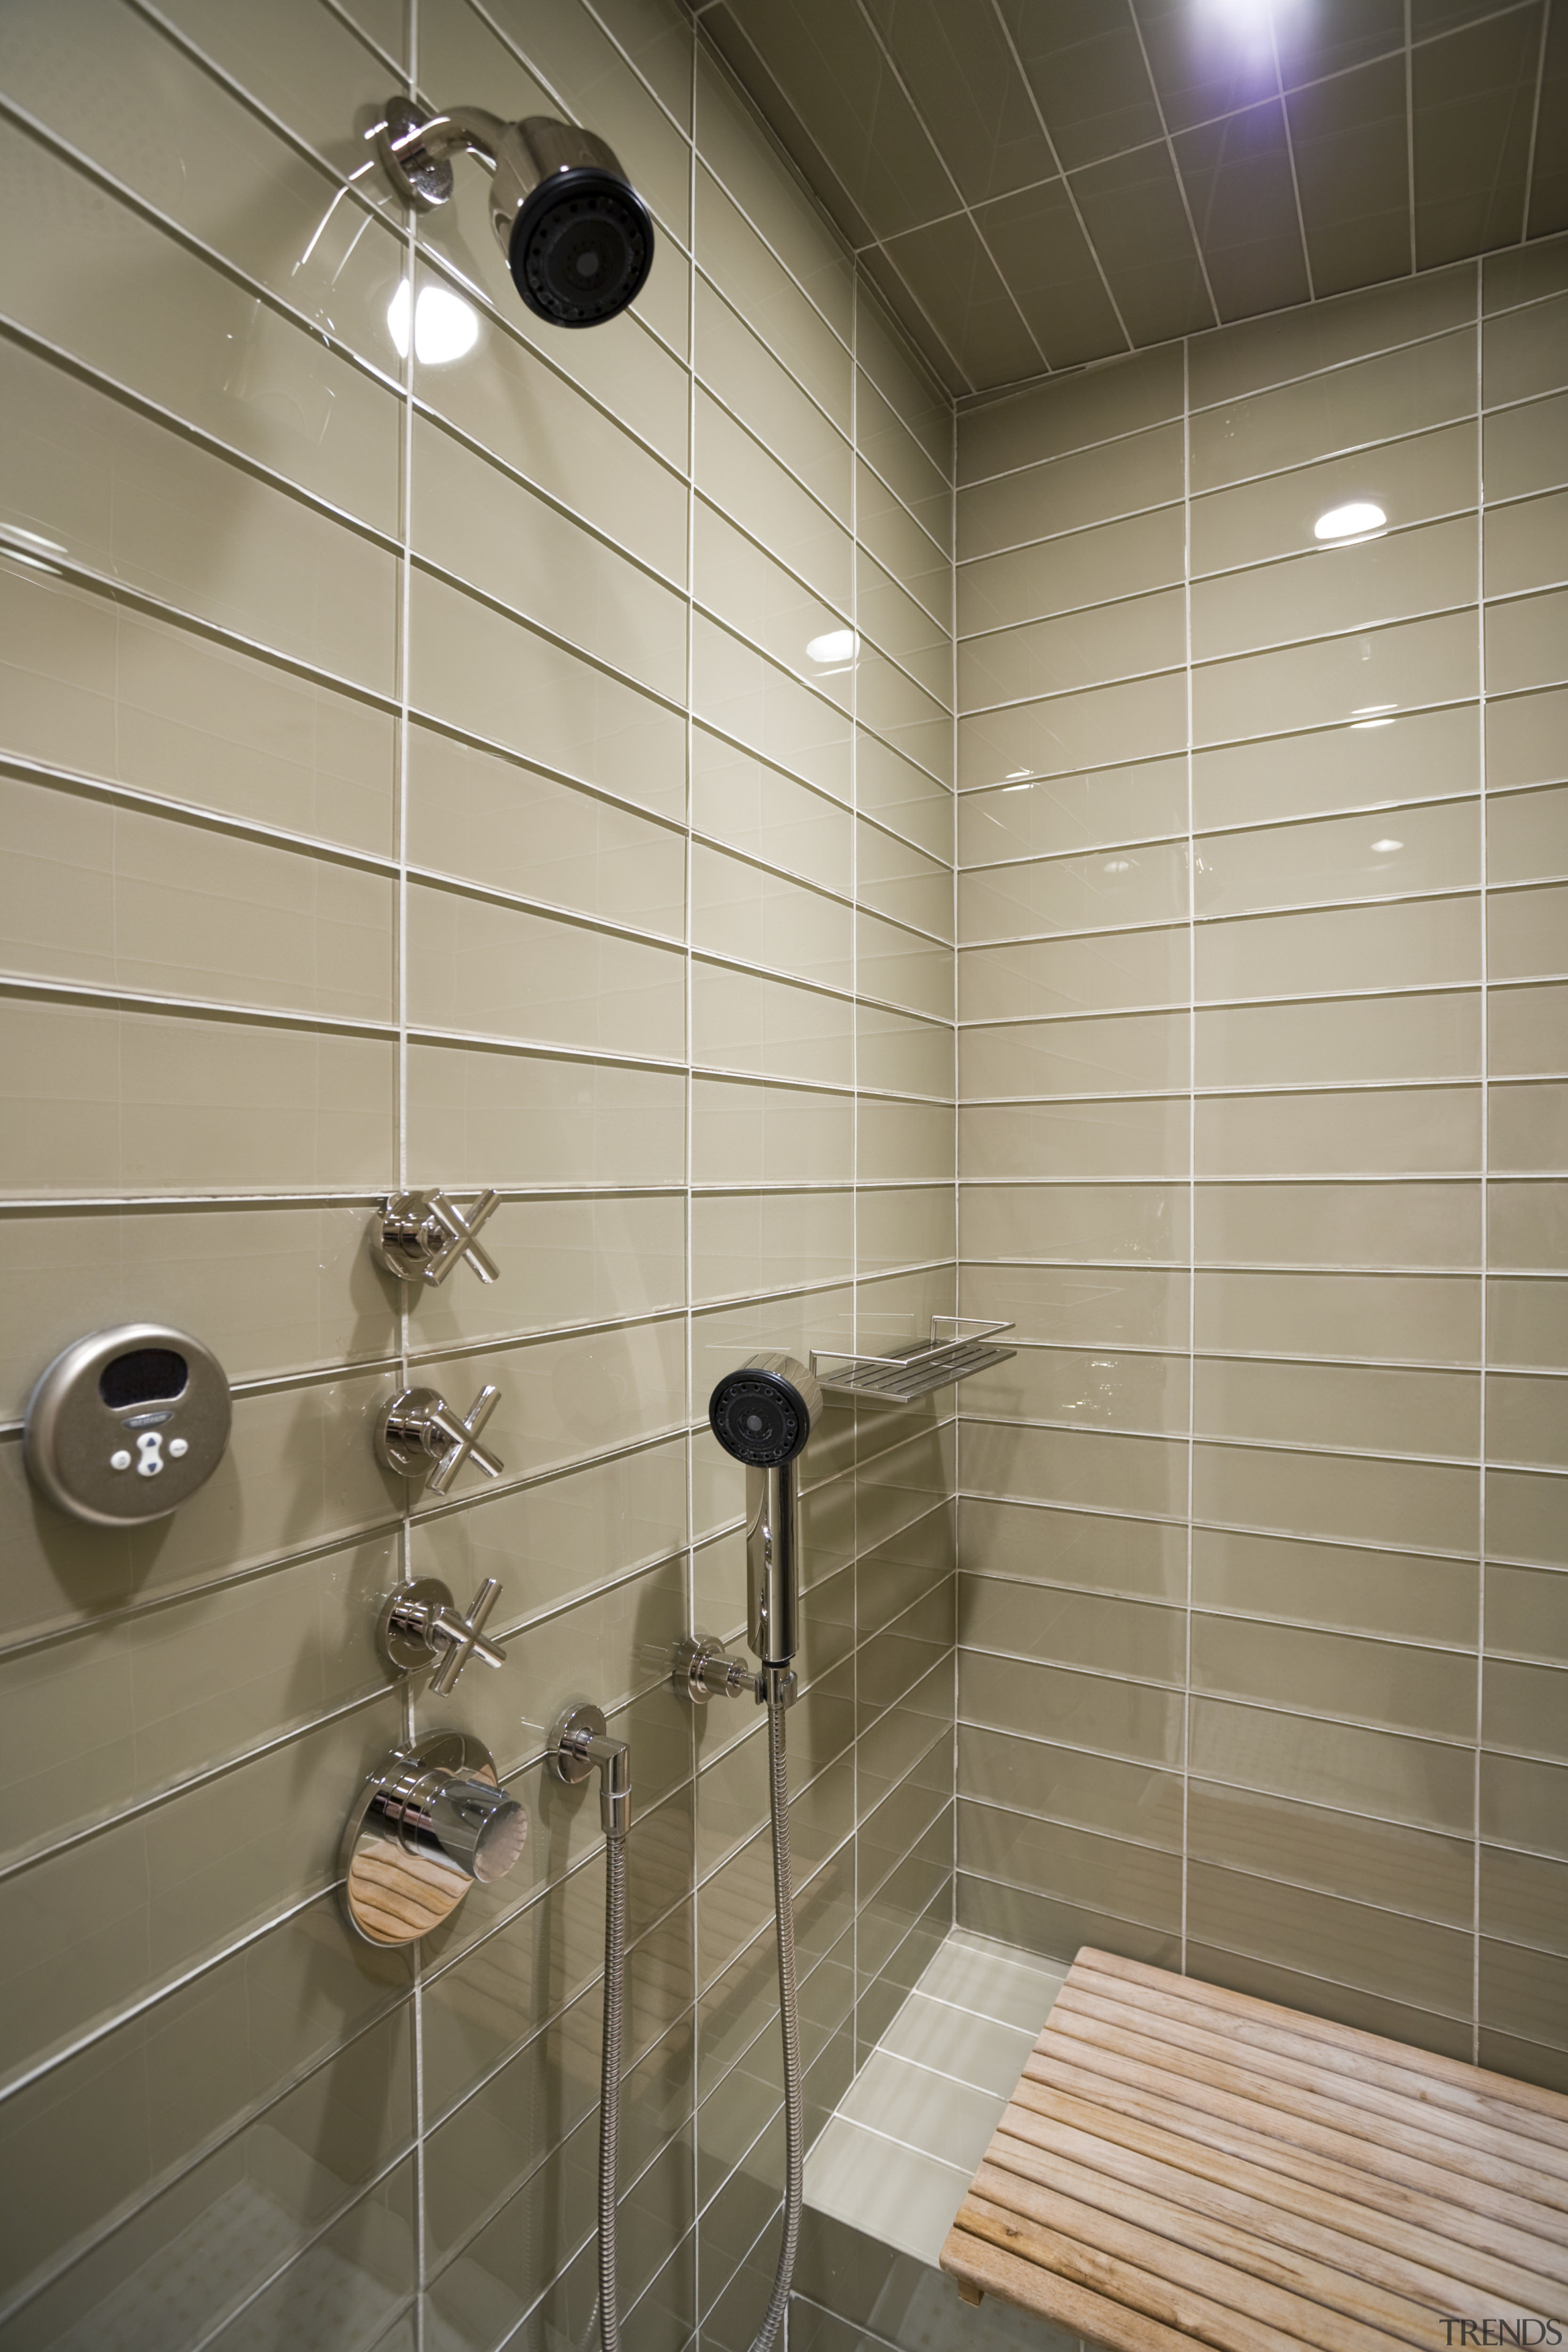 View of shower enclosure which features wall tiling, bathroom, floor, flooring, interior design, plumbing fixture, room, shower, tile, wall, gray, brown